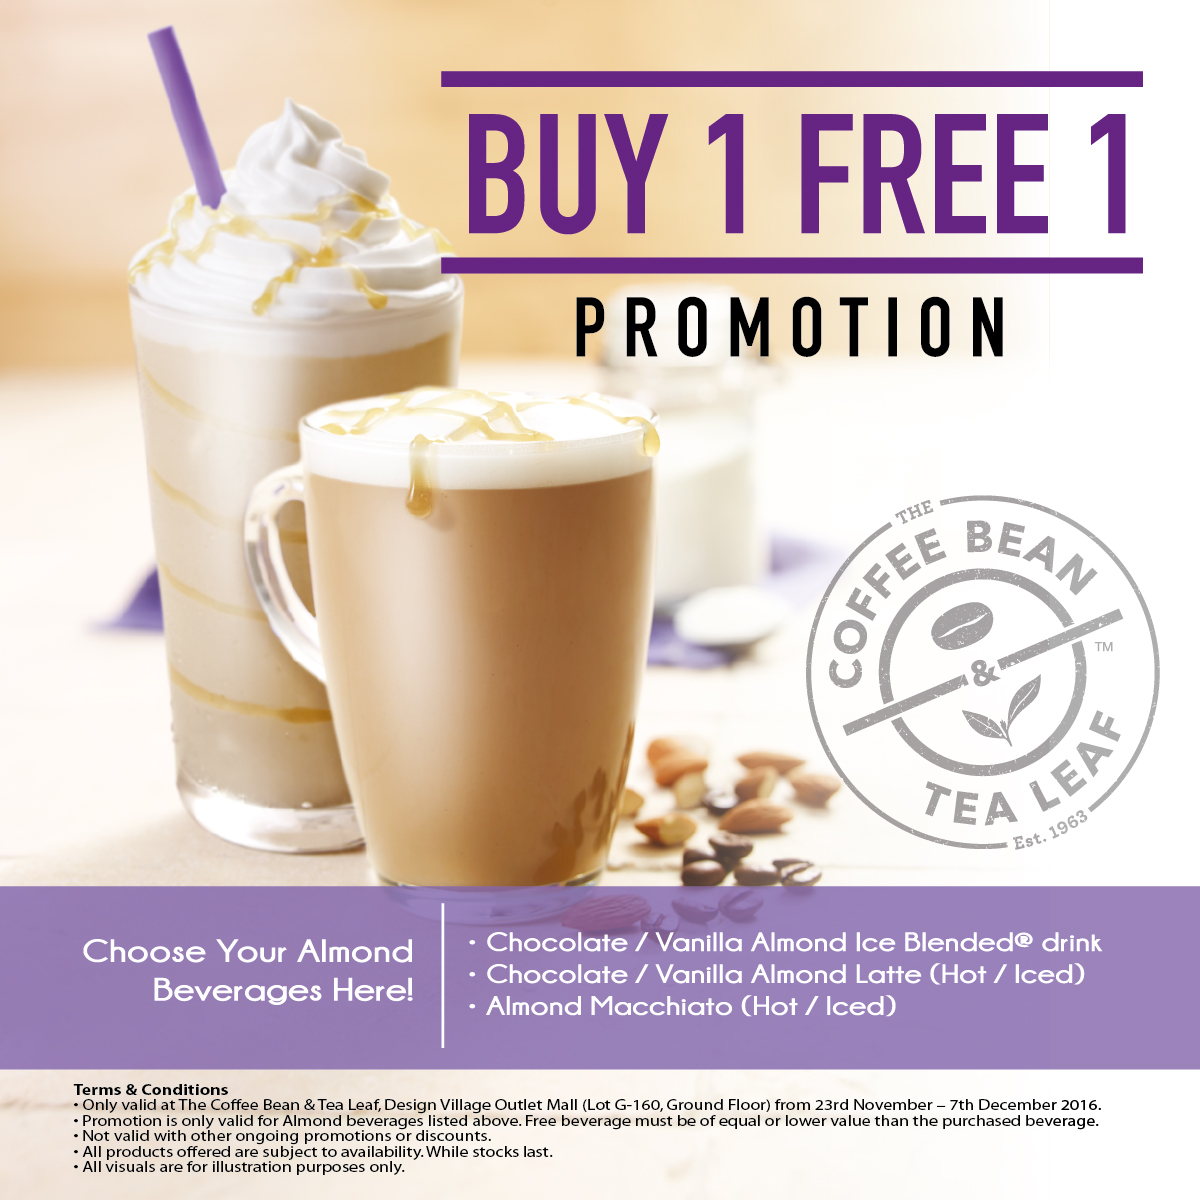 Design village coffee bean buy 1 free 1 promo for Buy cheap posters online